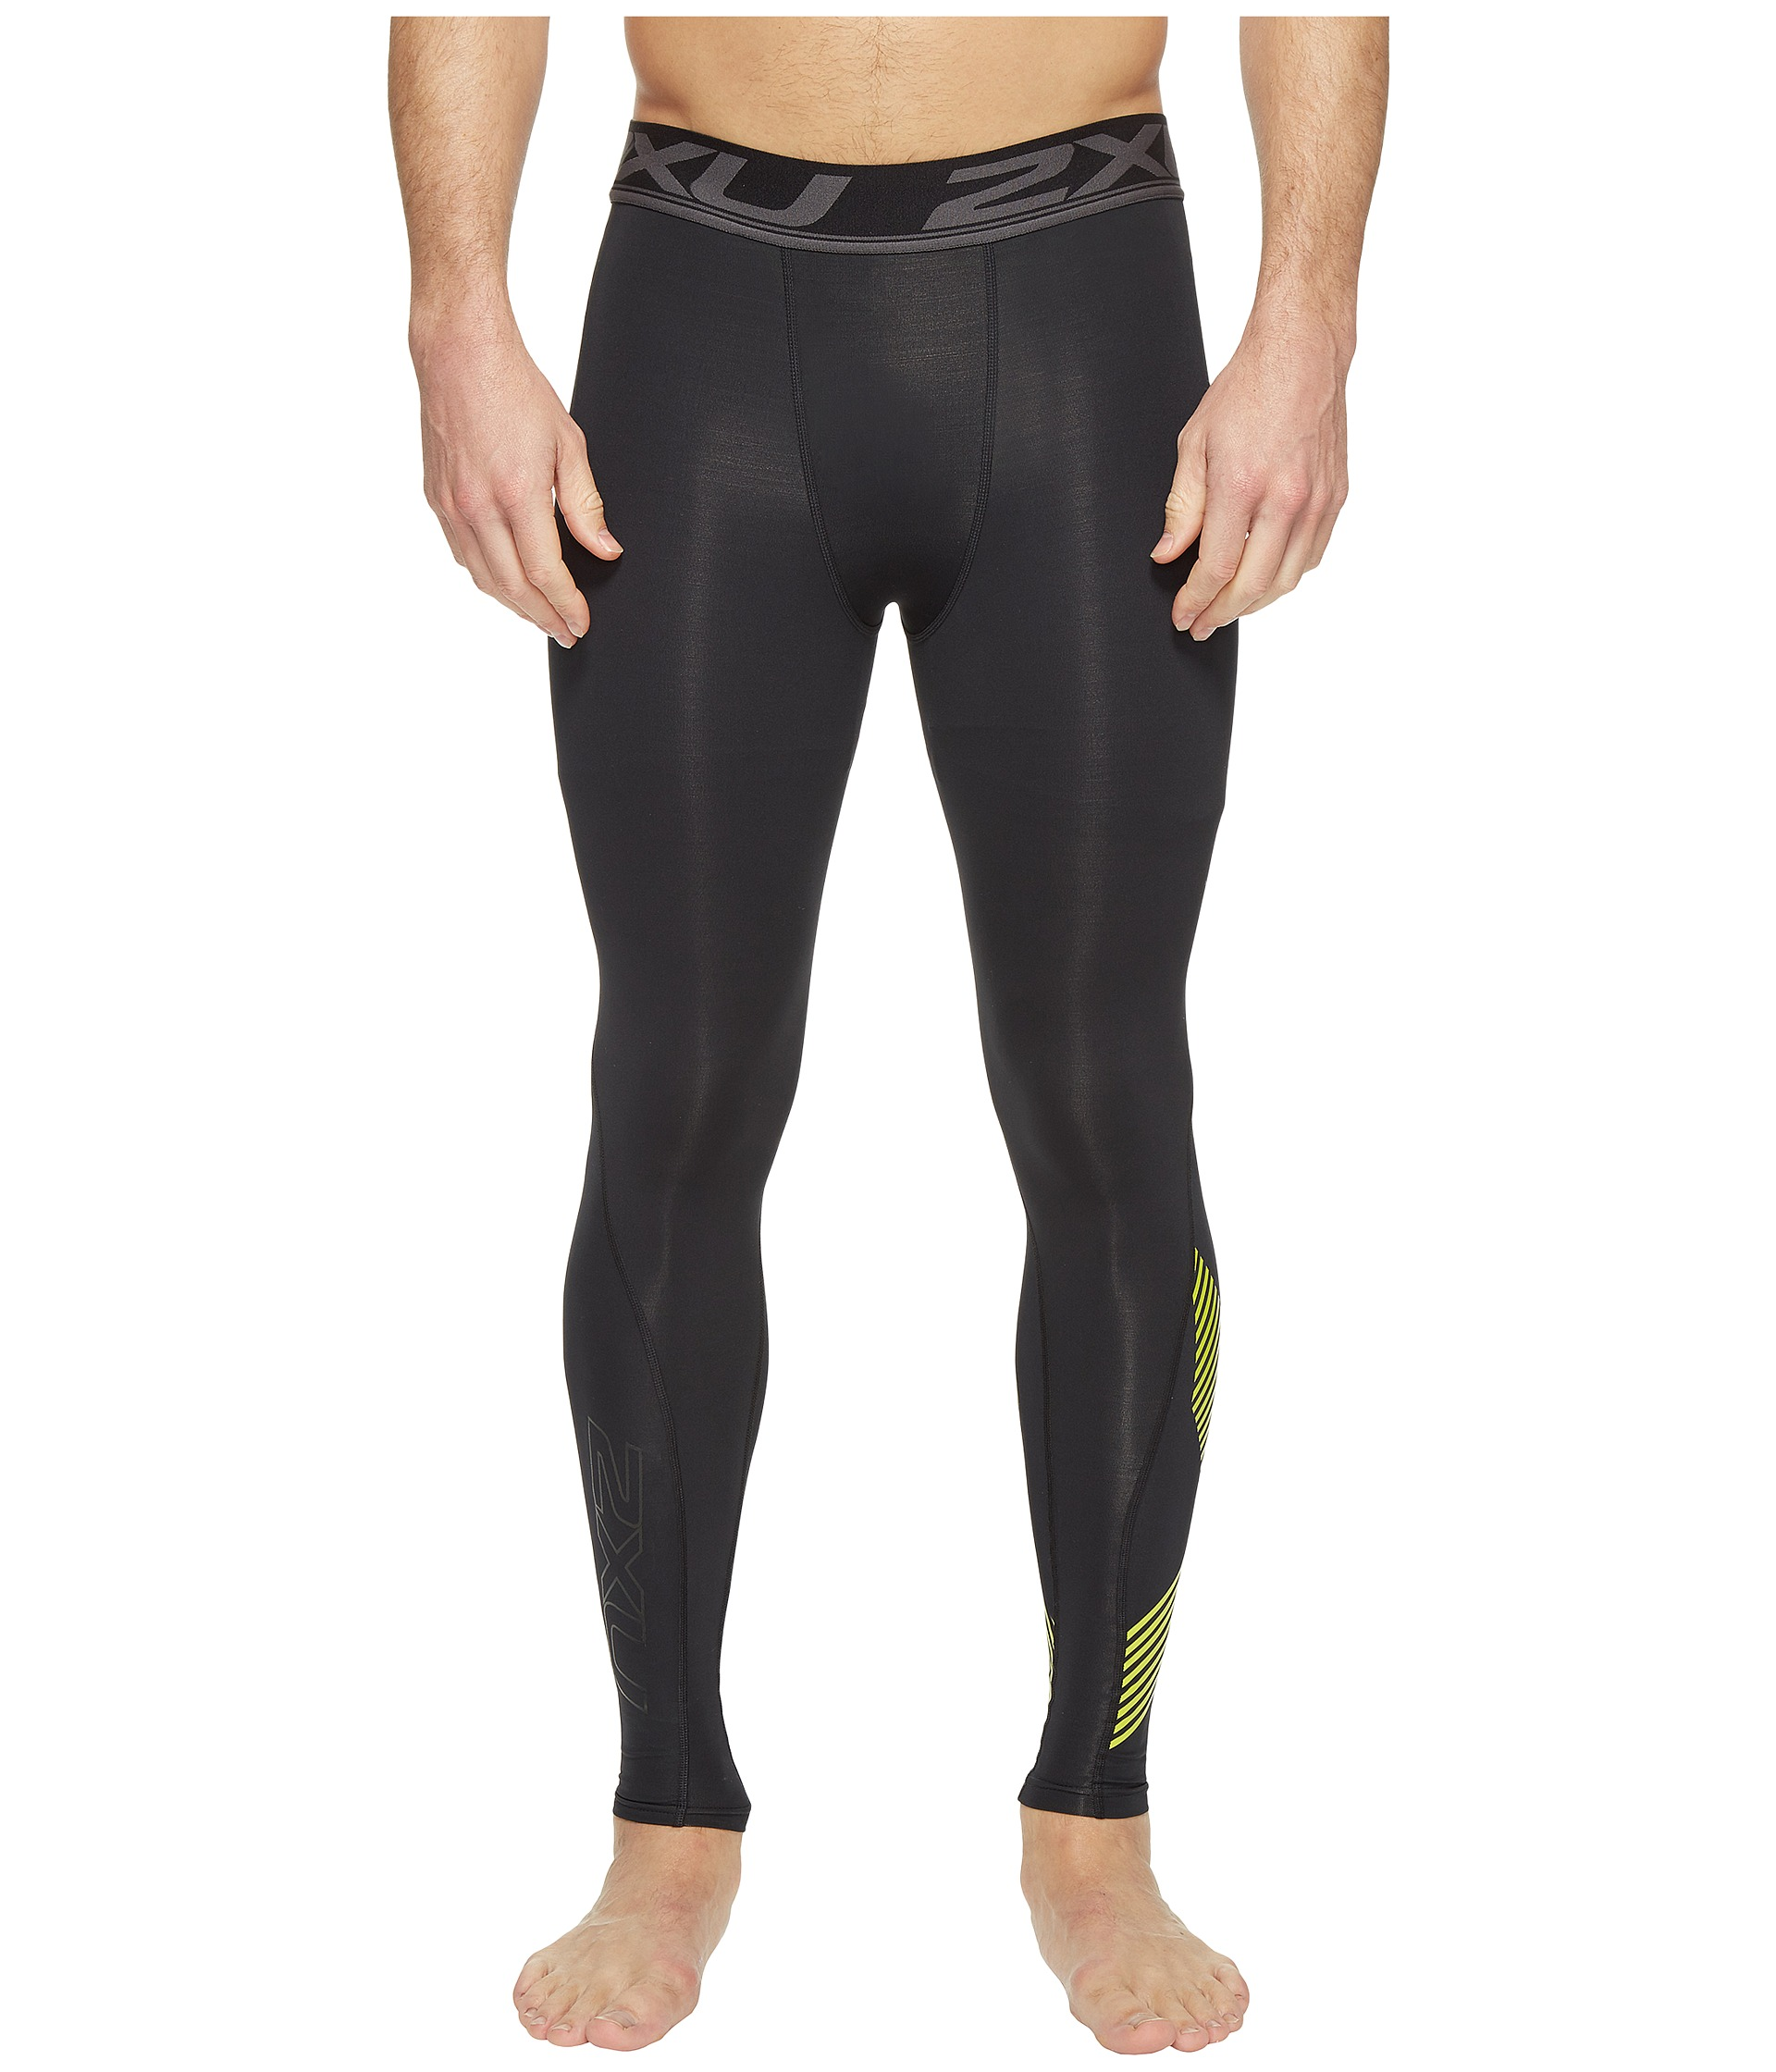 how to wear 2xu compression tights